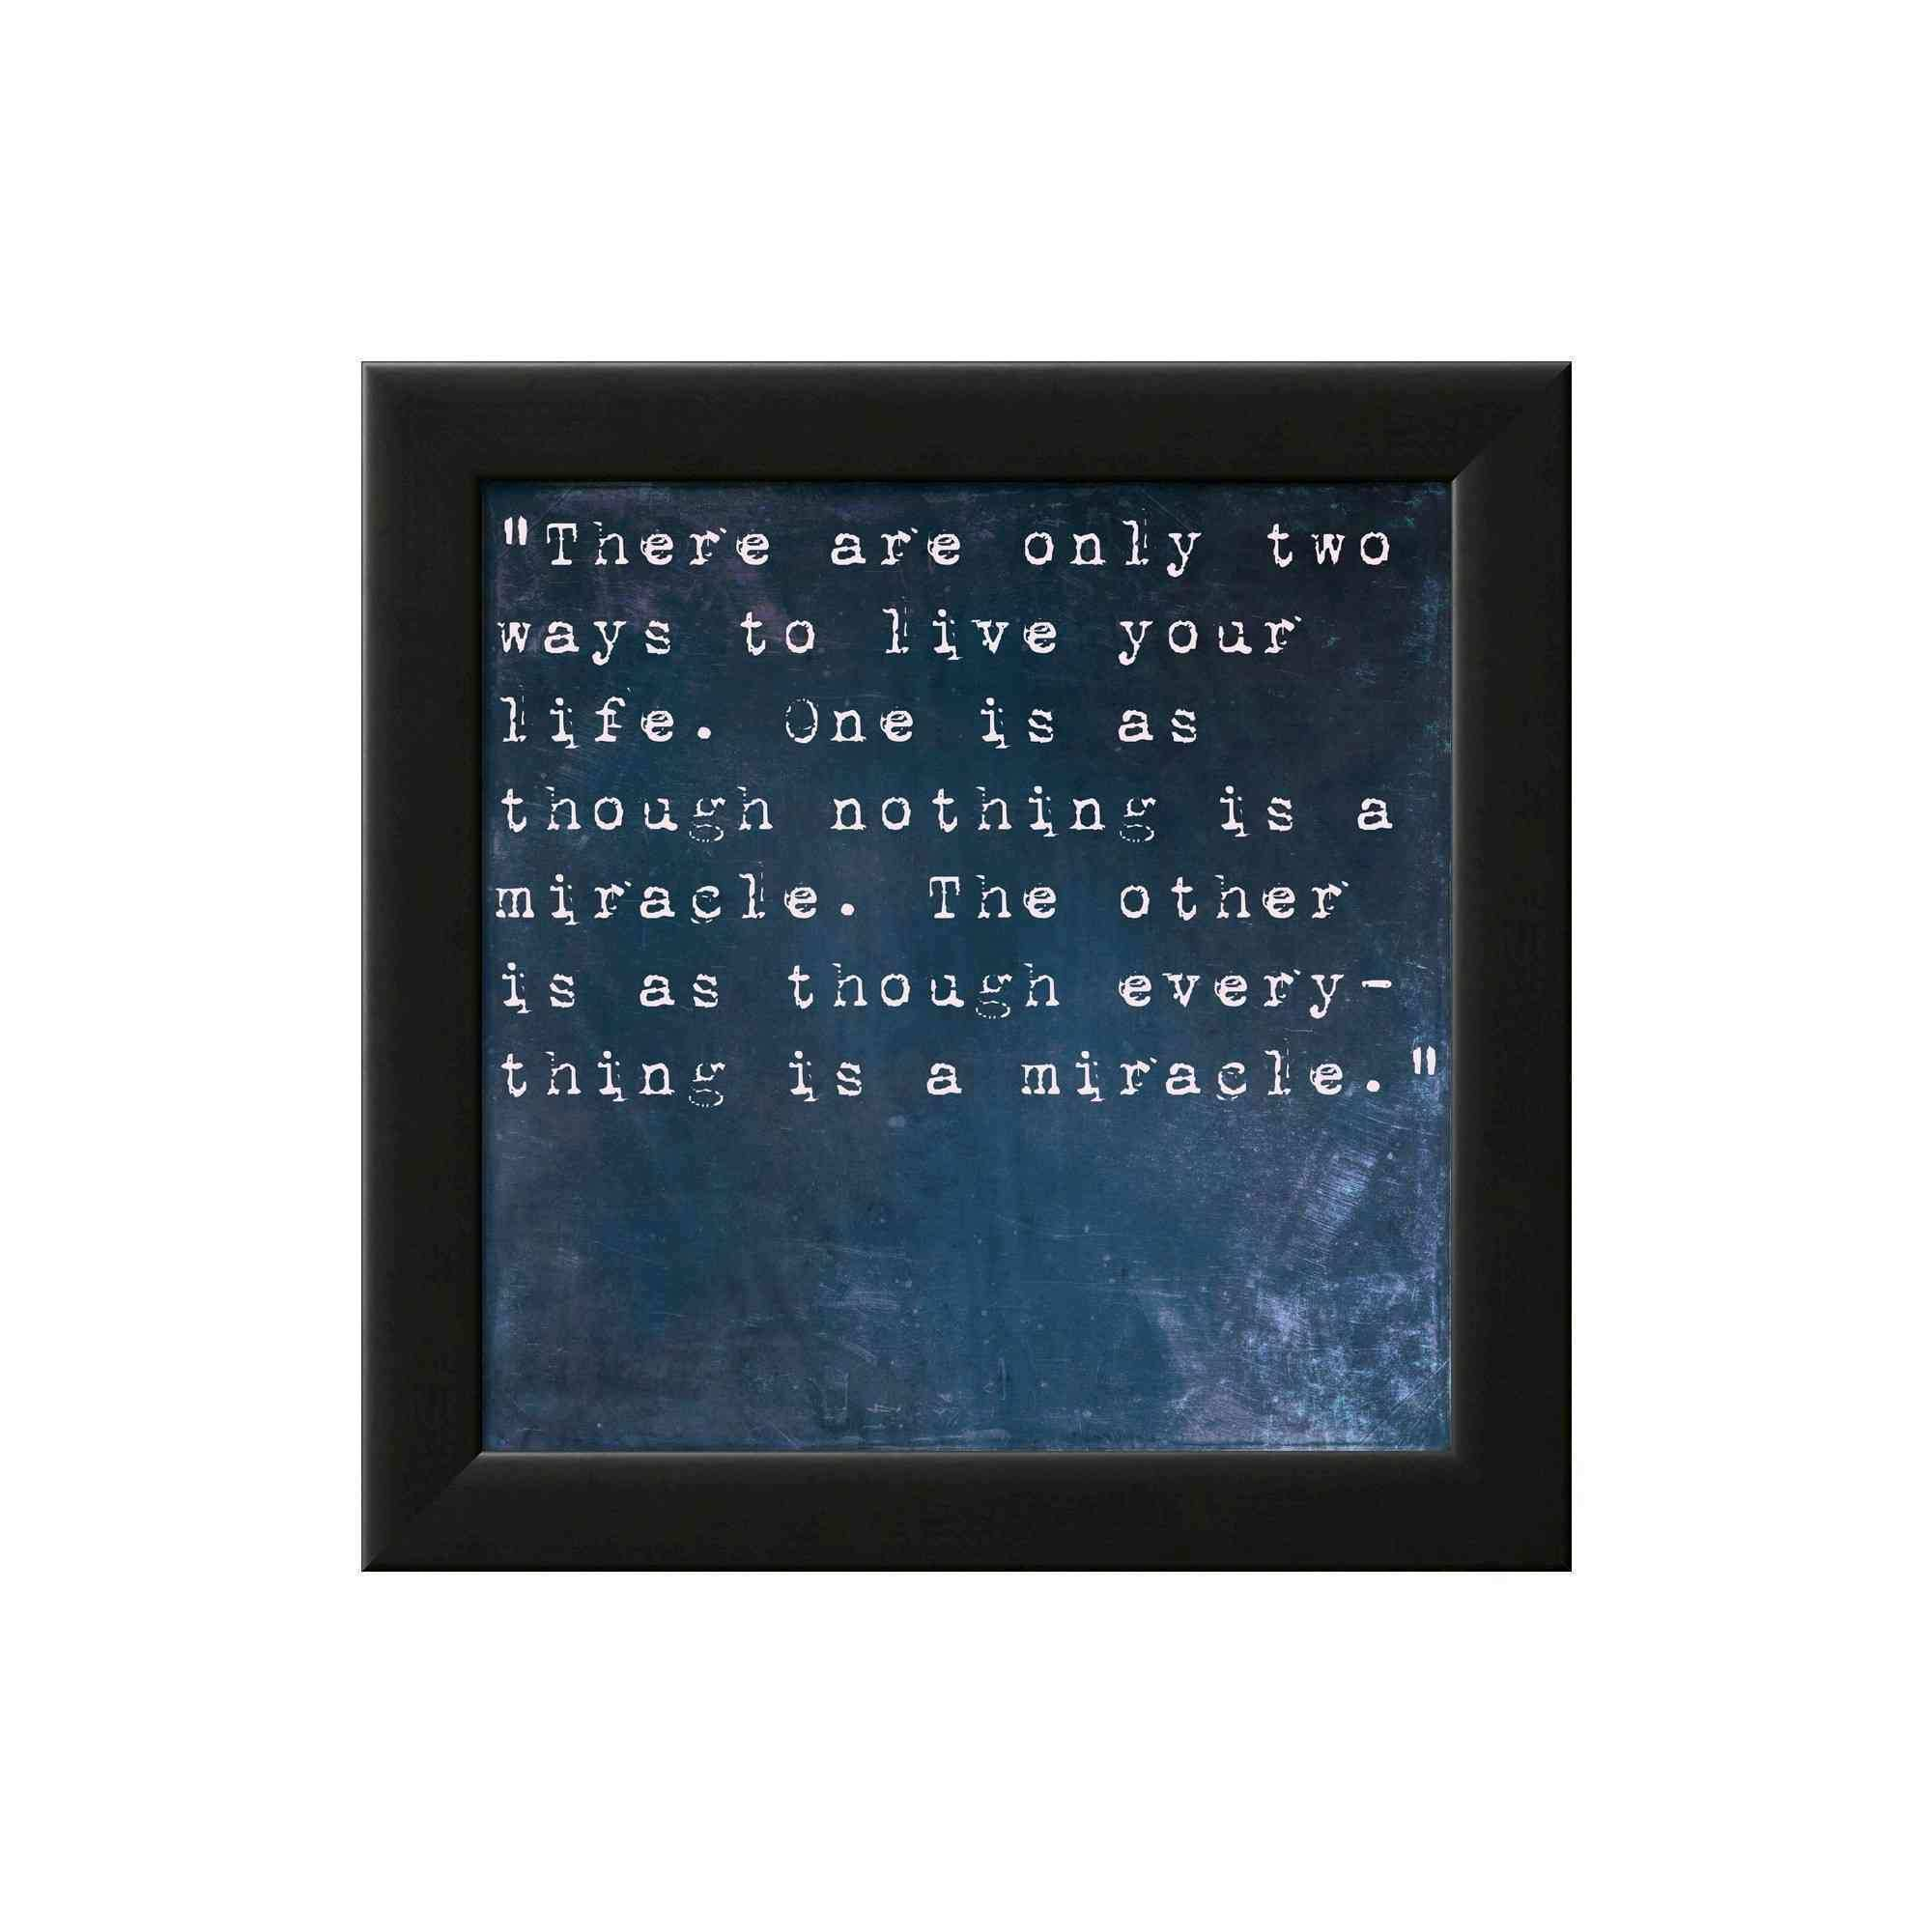 Painting Quotes New Art Framed Wall Poster Print Inspirational Quote